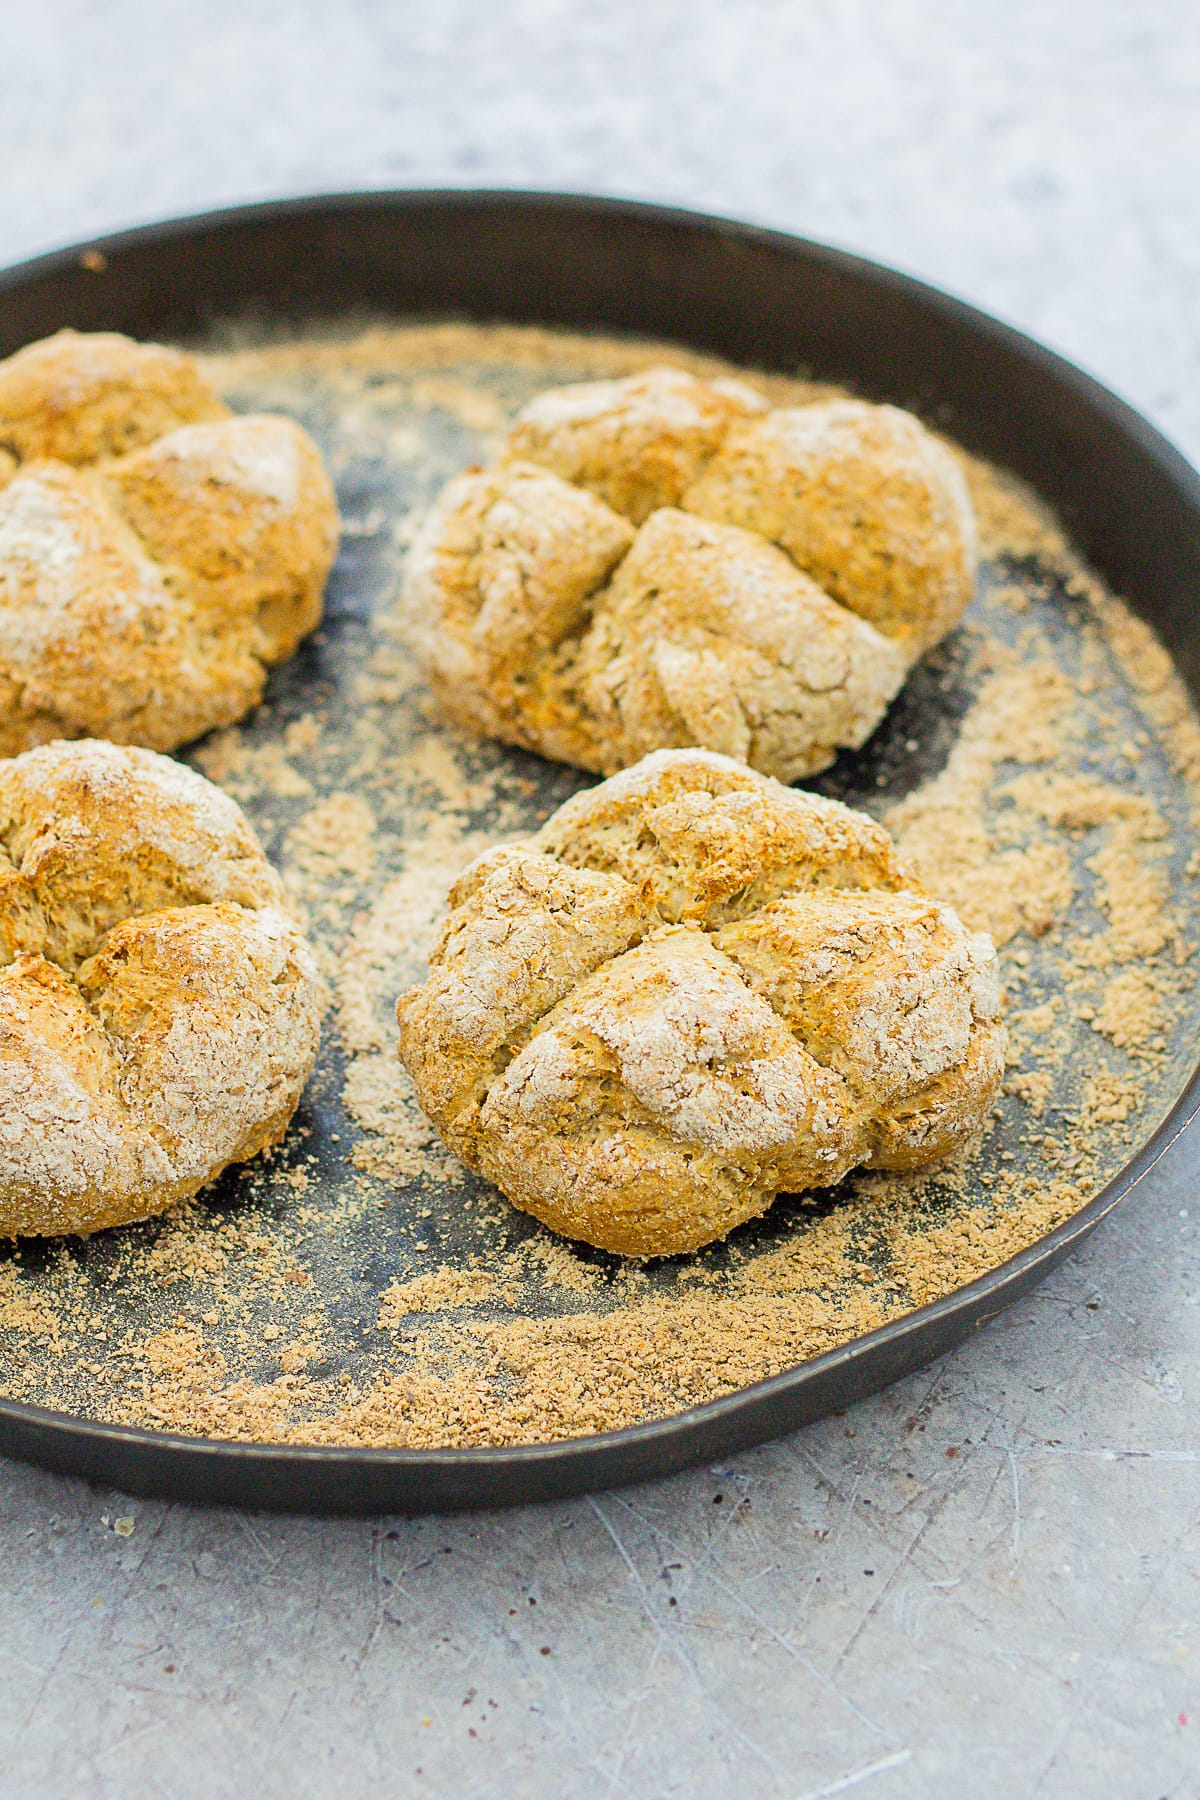 4 cooked soda bread rolls on a baking tray